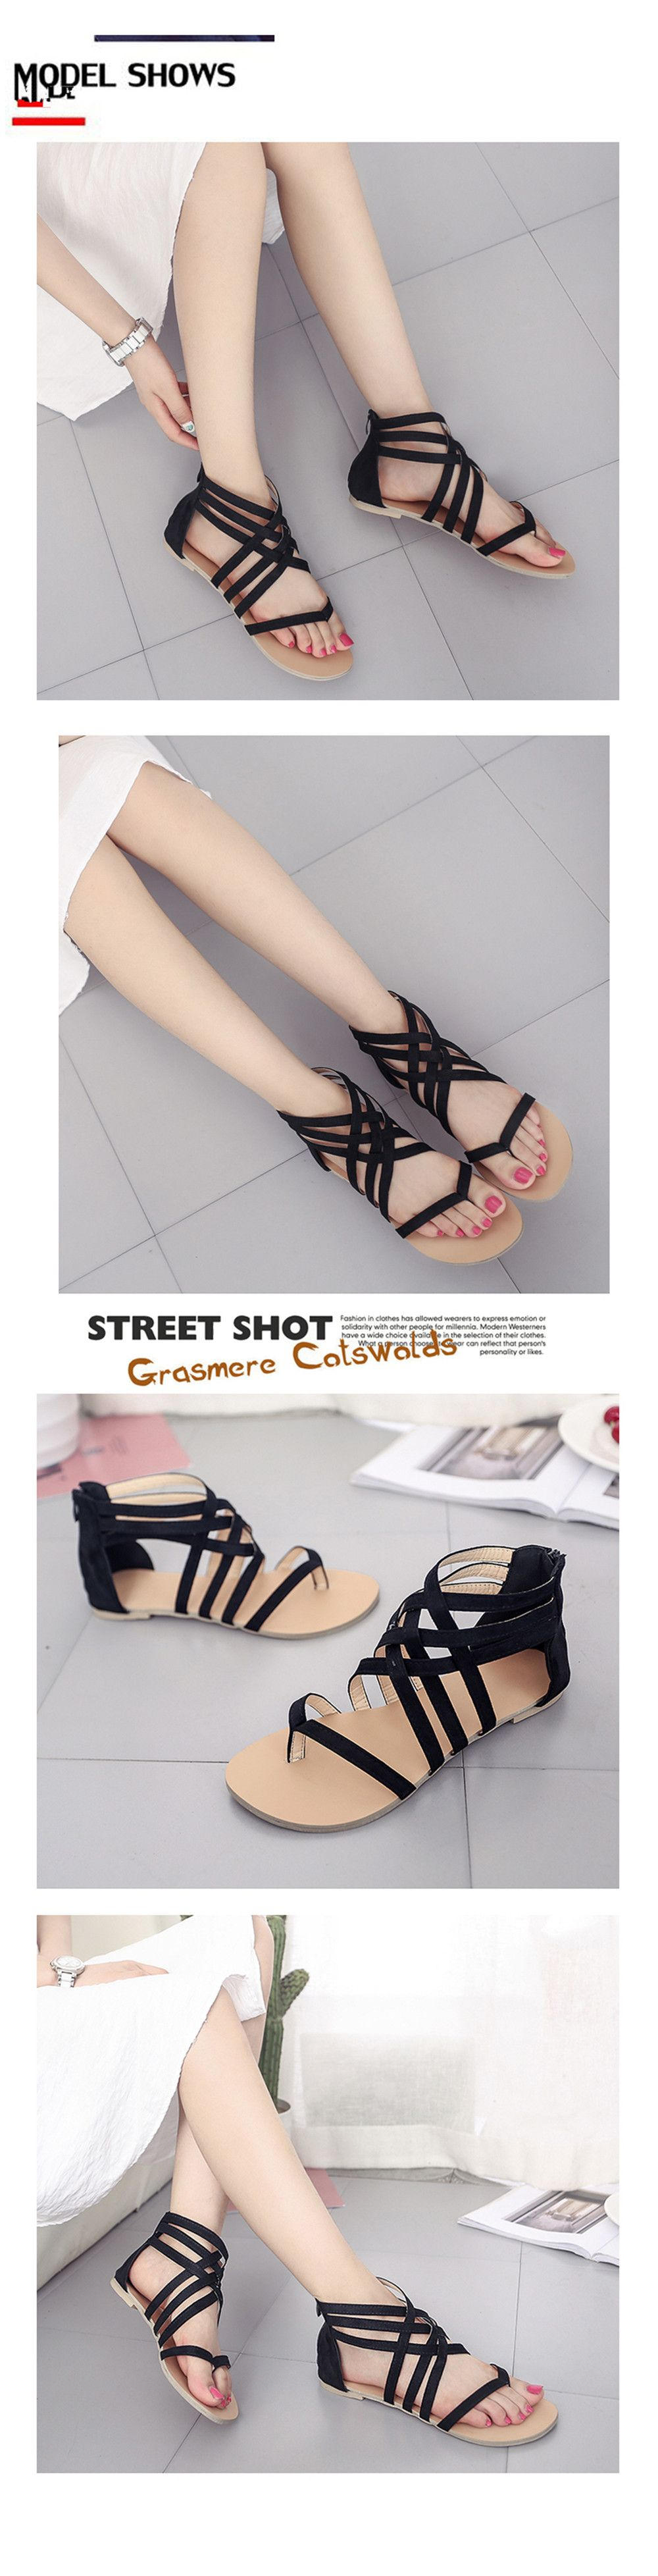 f61dc8c92 2019 The Pine-toed Hollow With Roman Sandals